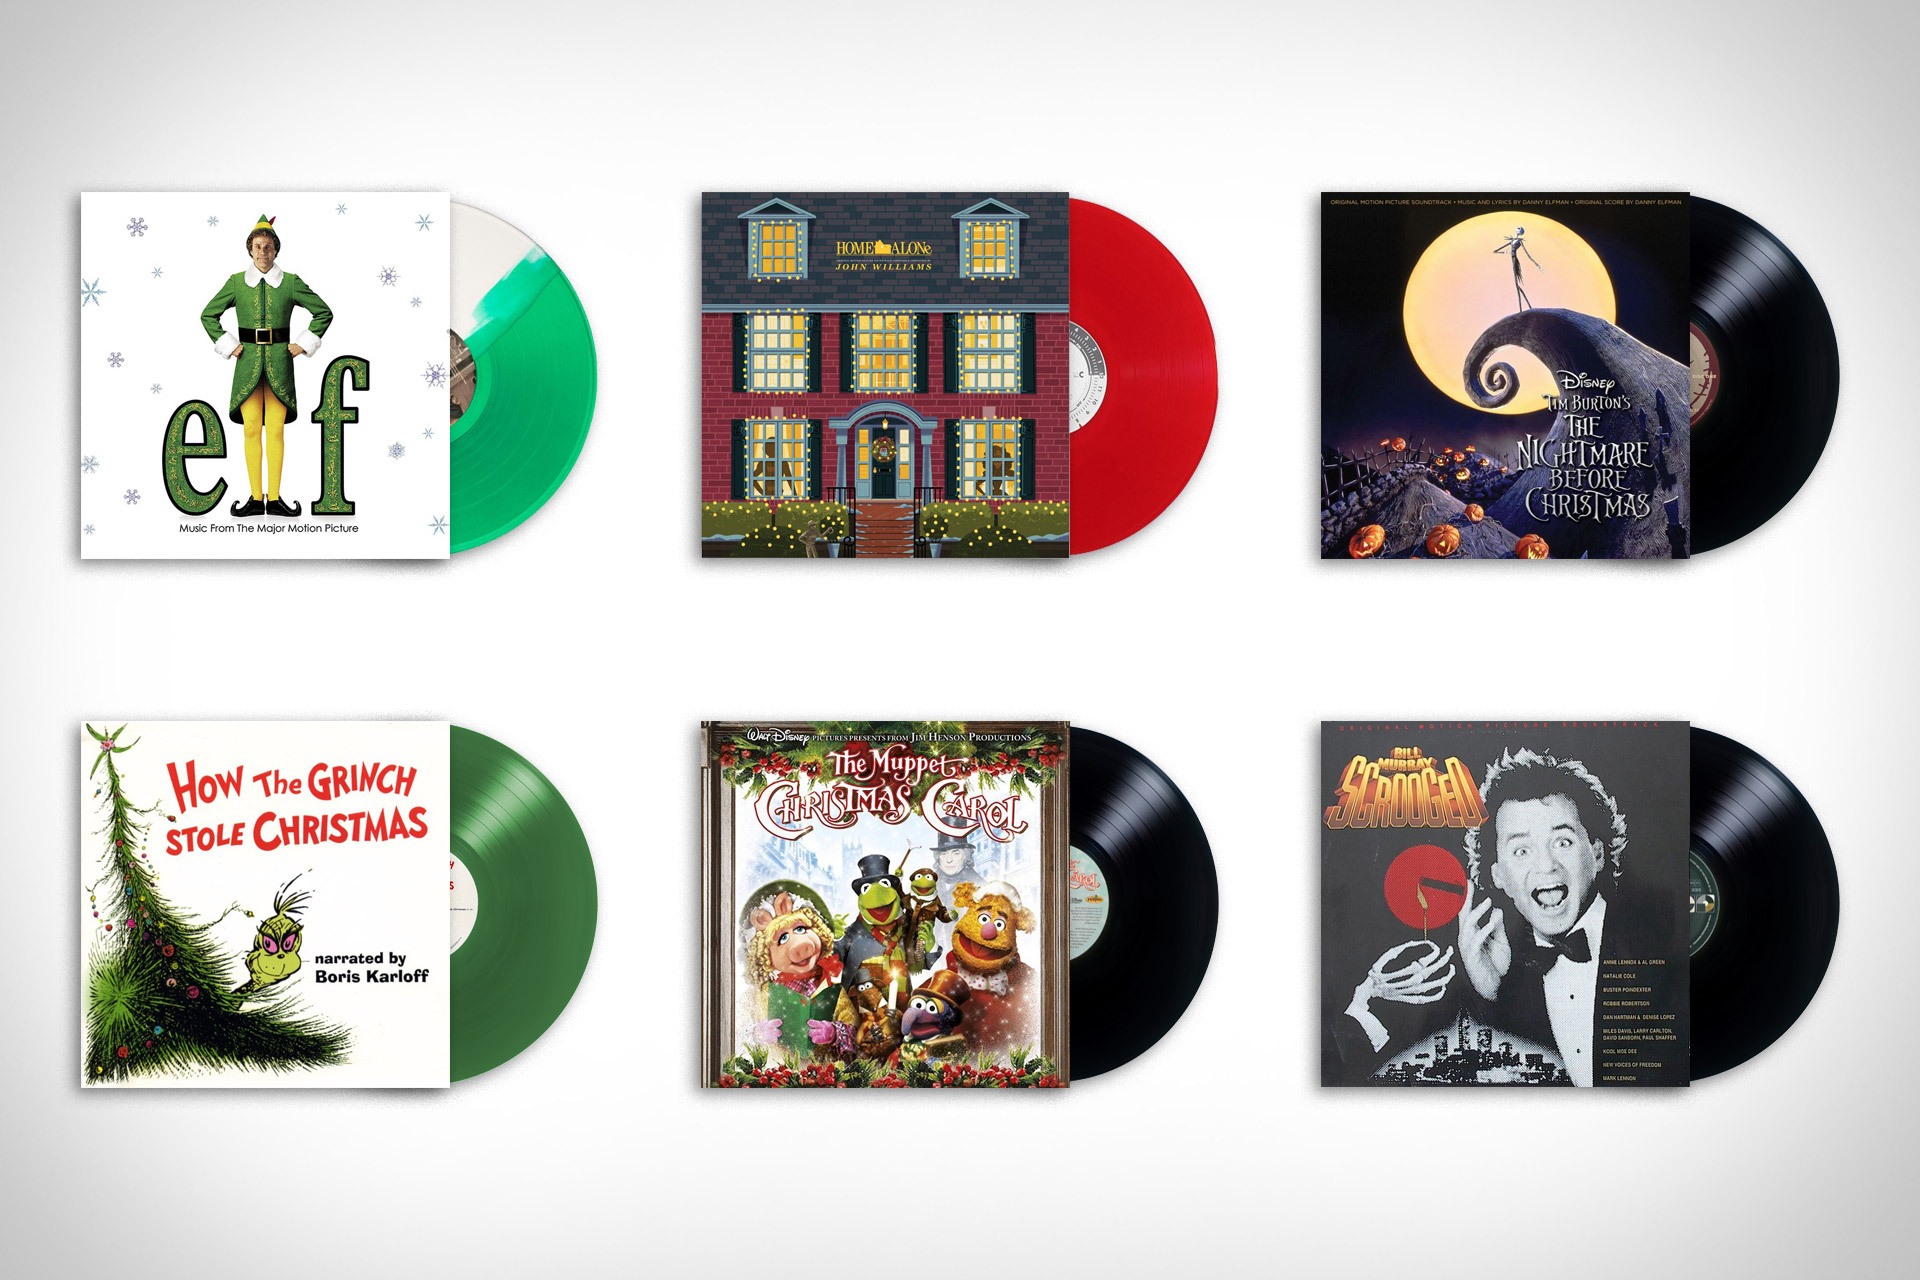 Analog: Grinch | Uncrate